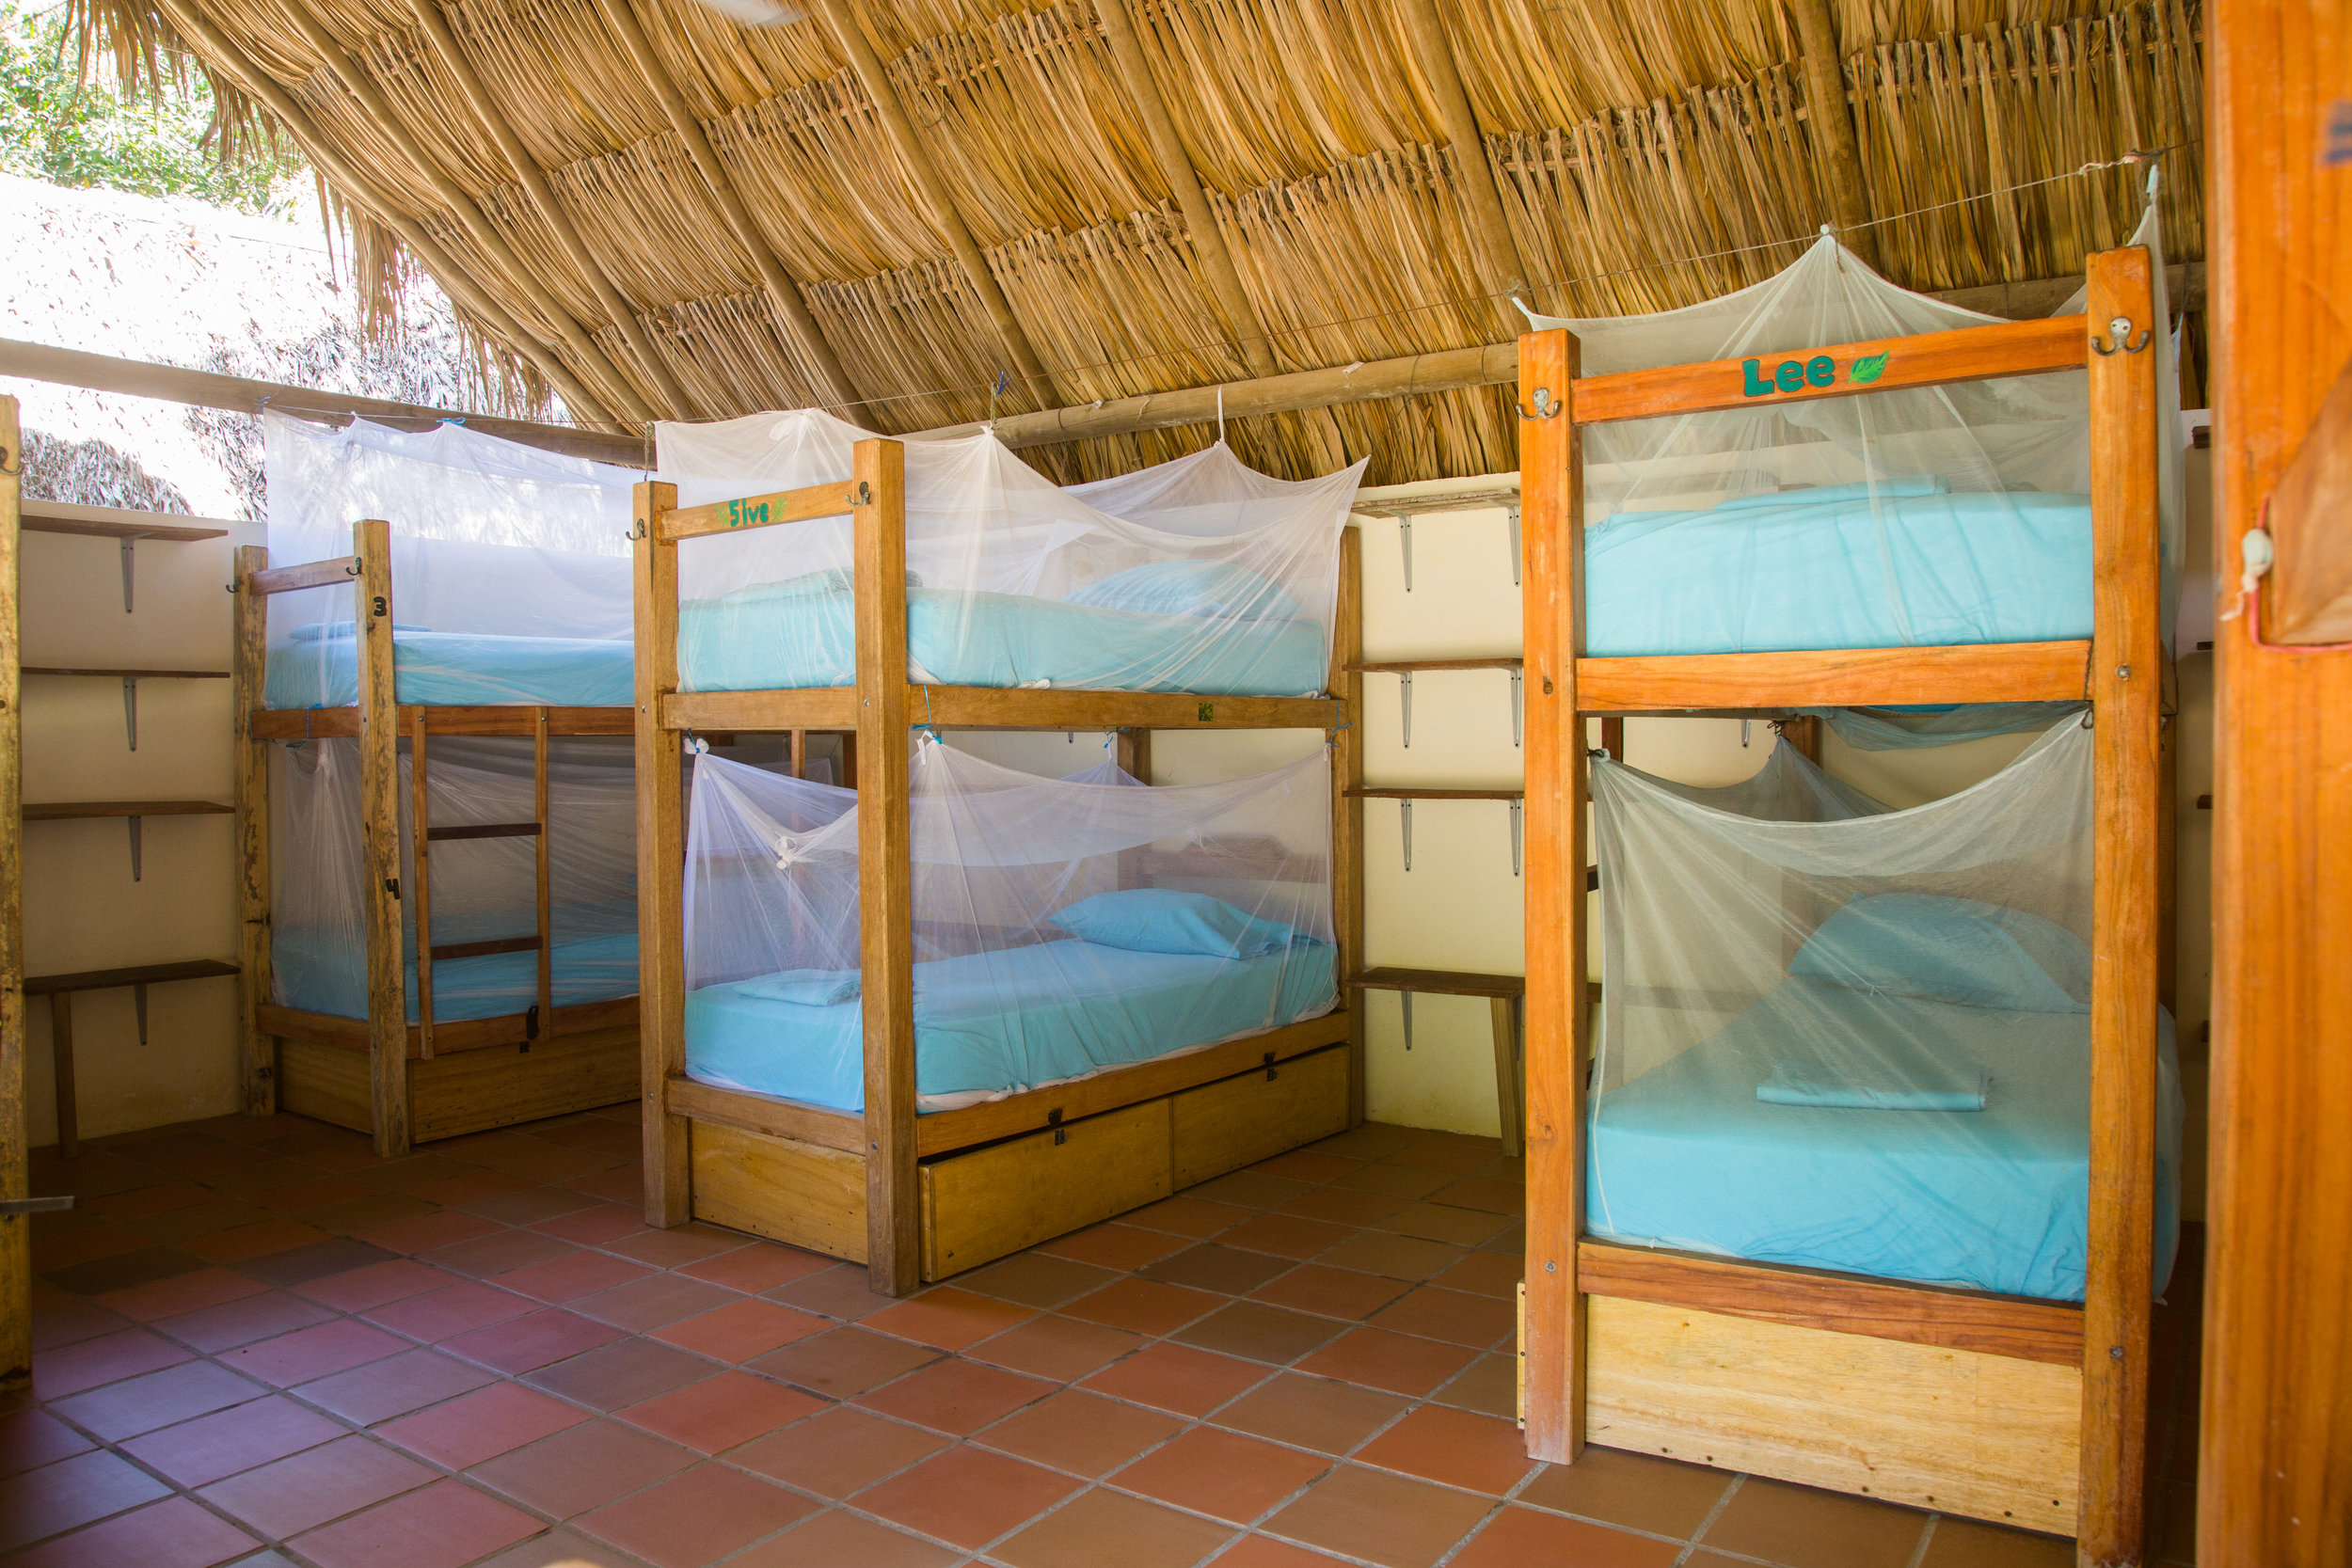 Dorm accommodation at El Rio Hostel.